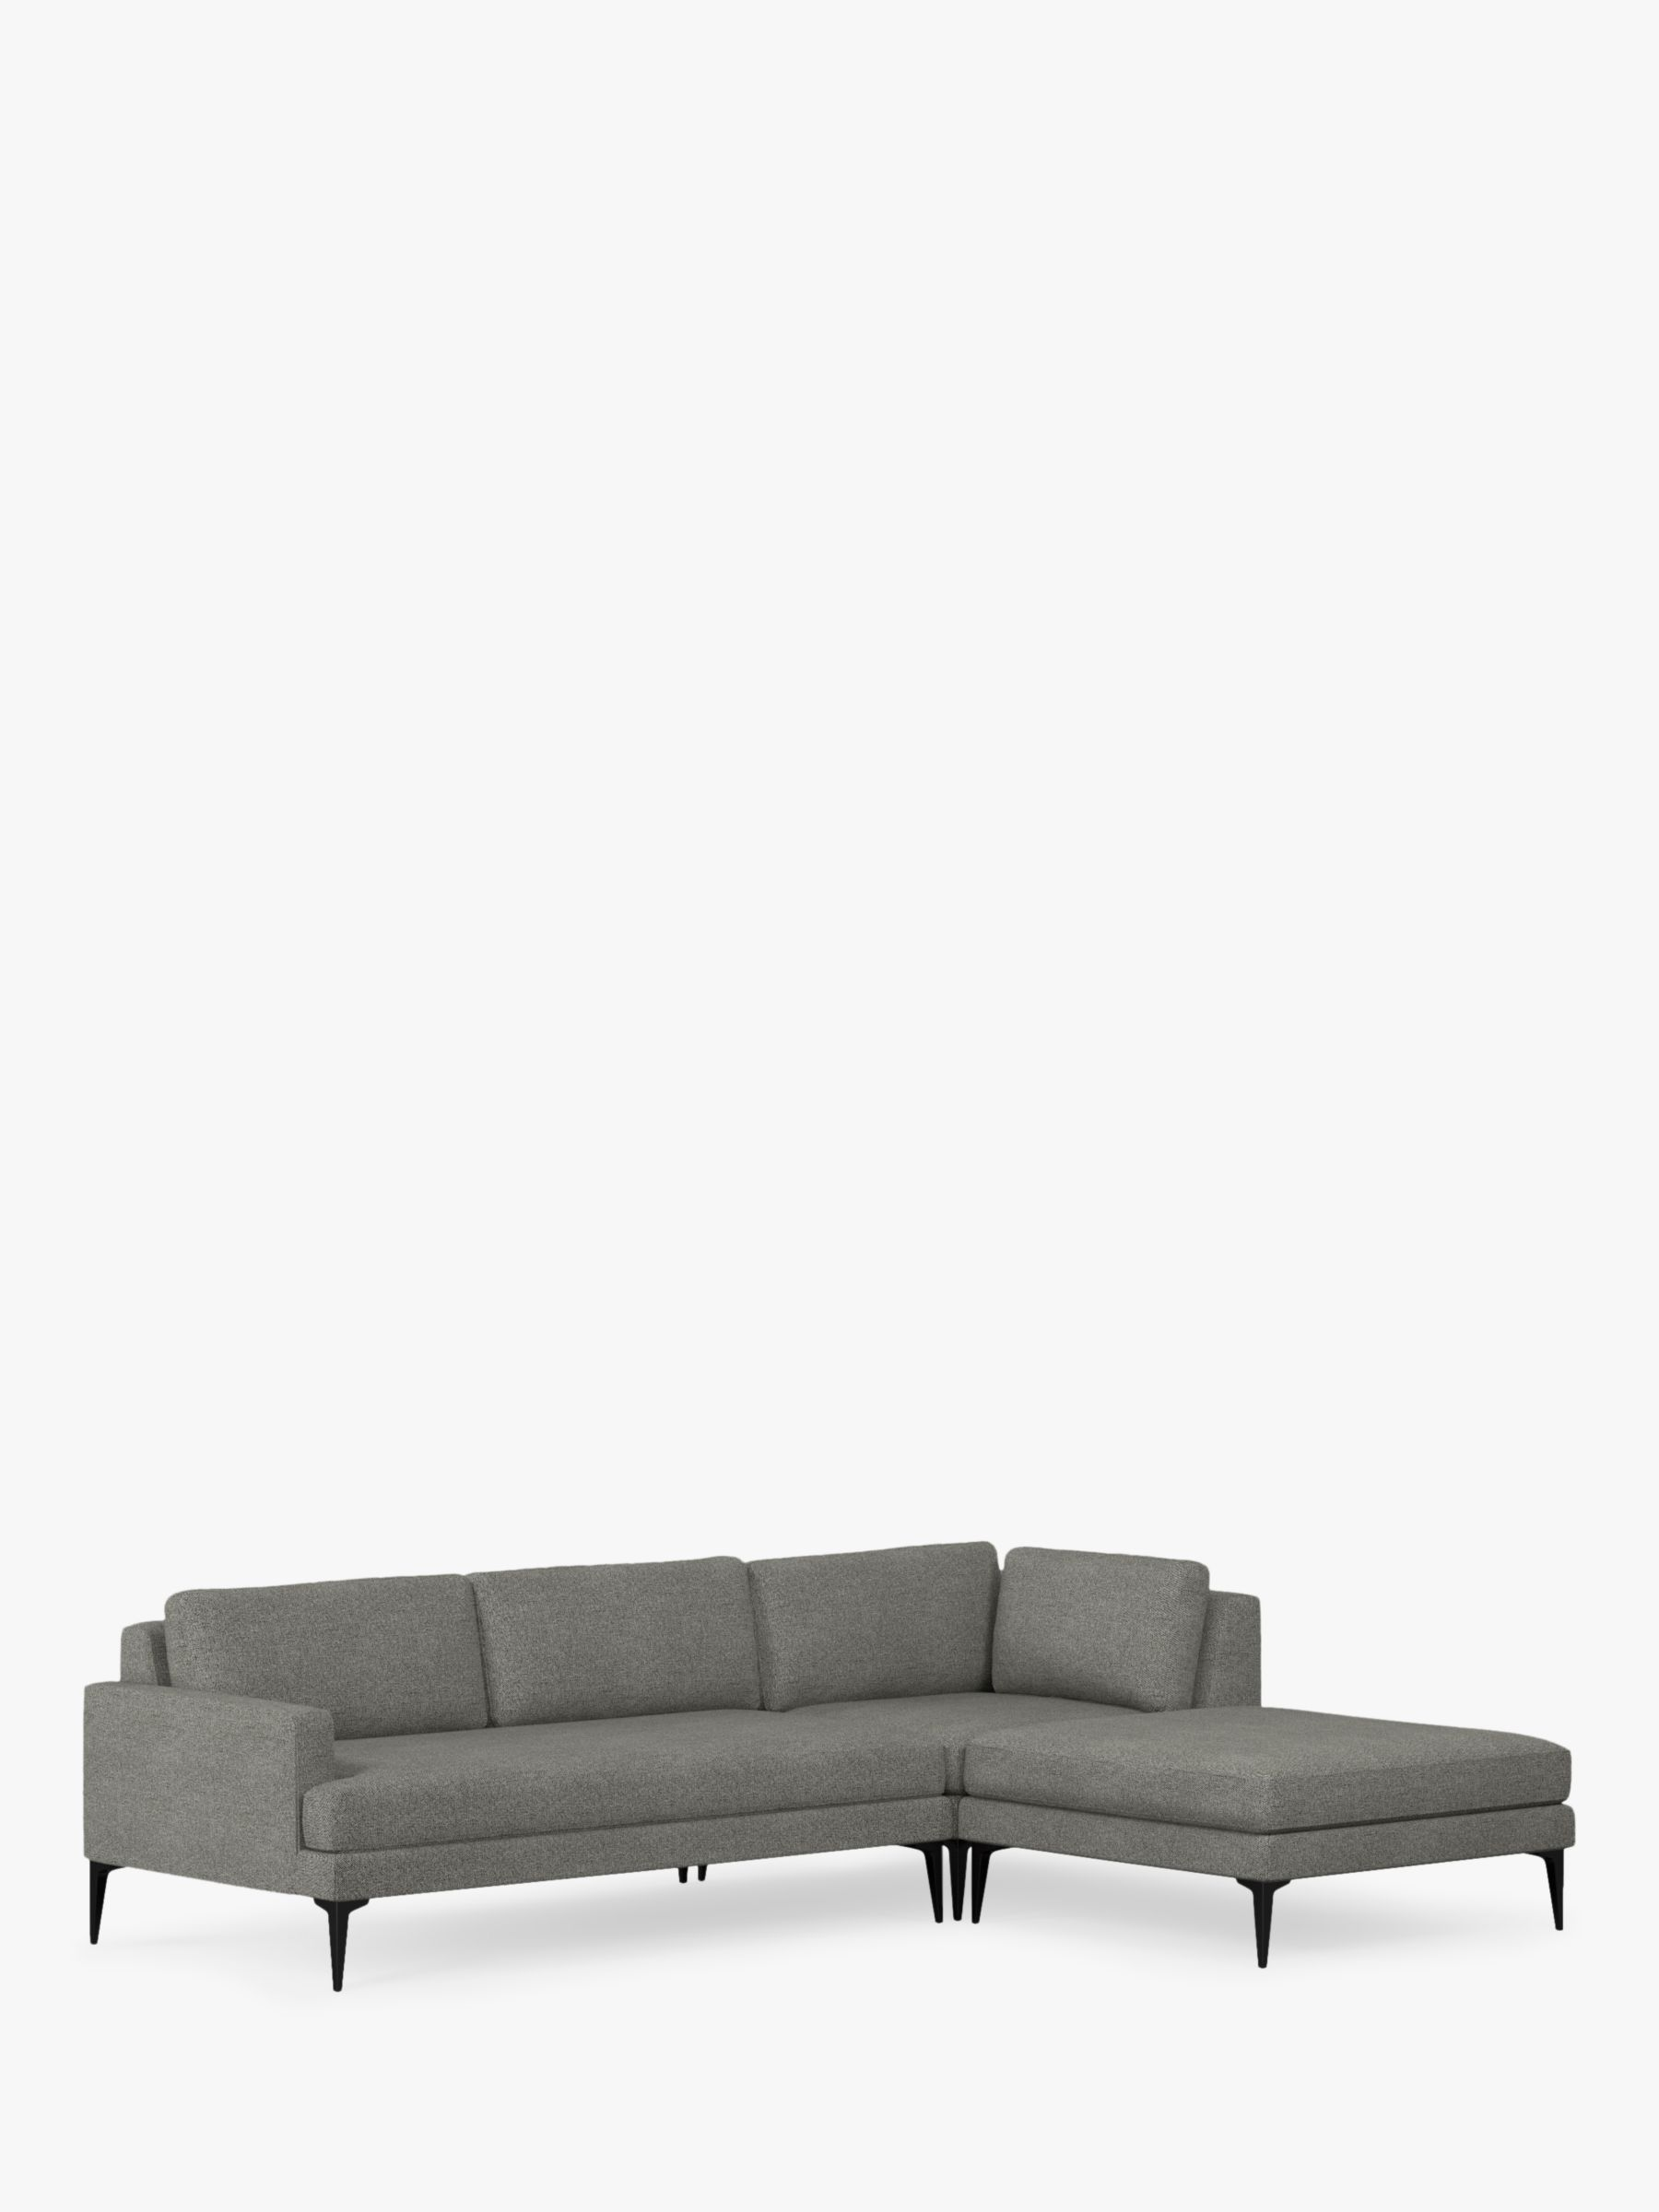 West Elm Andes Large 3 Seater Rhf